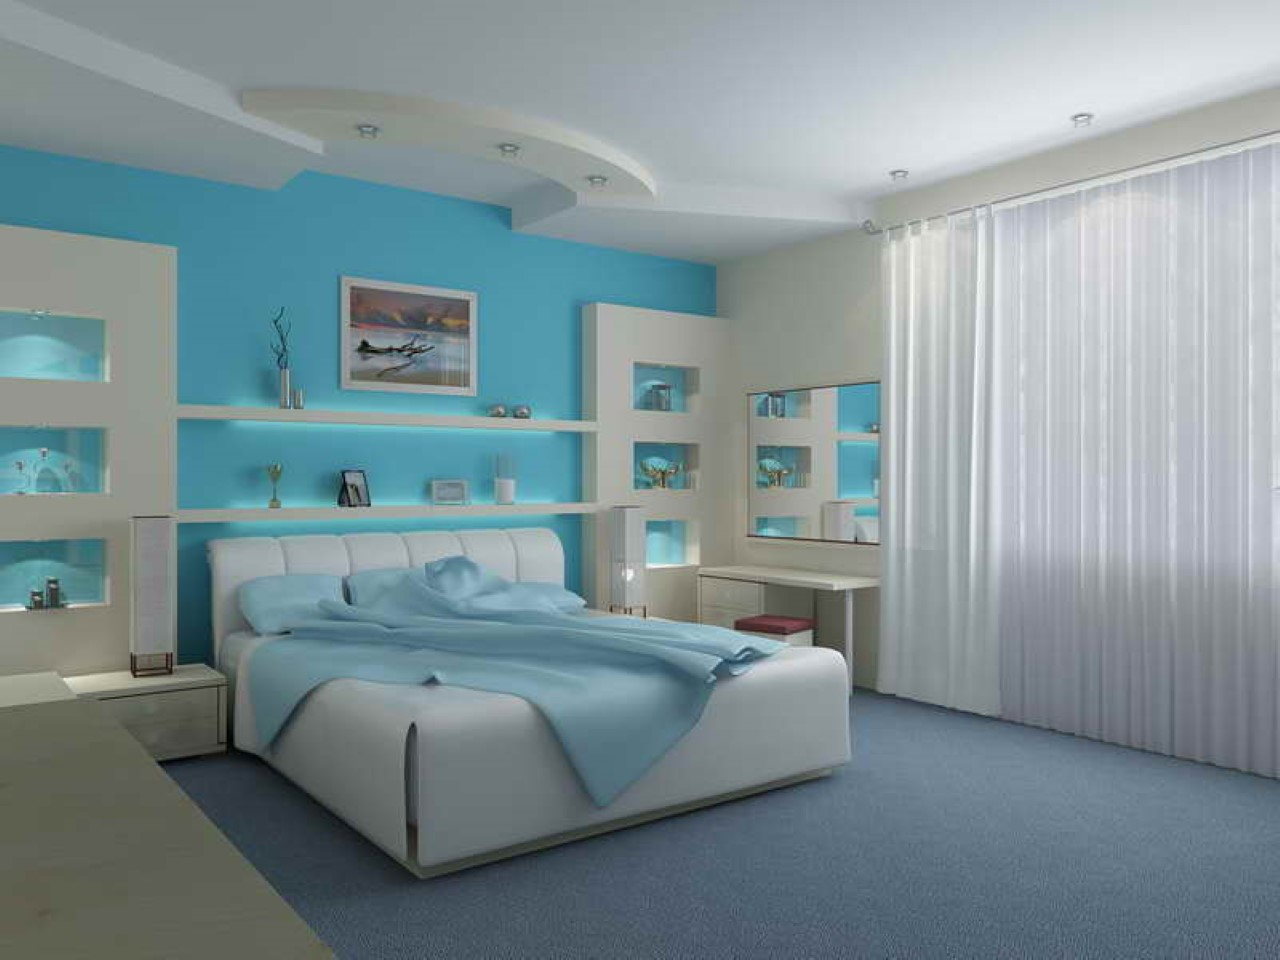 Cool Smooth Bedroom Interior With Ocean Designs (Photo 3 of 10)